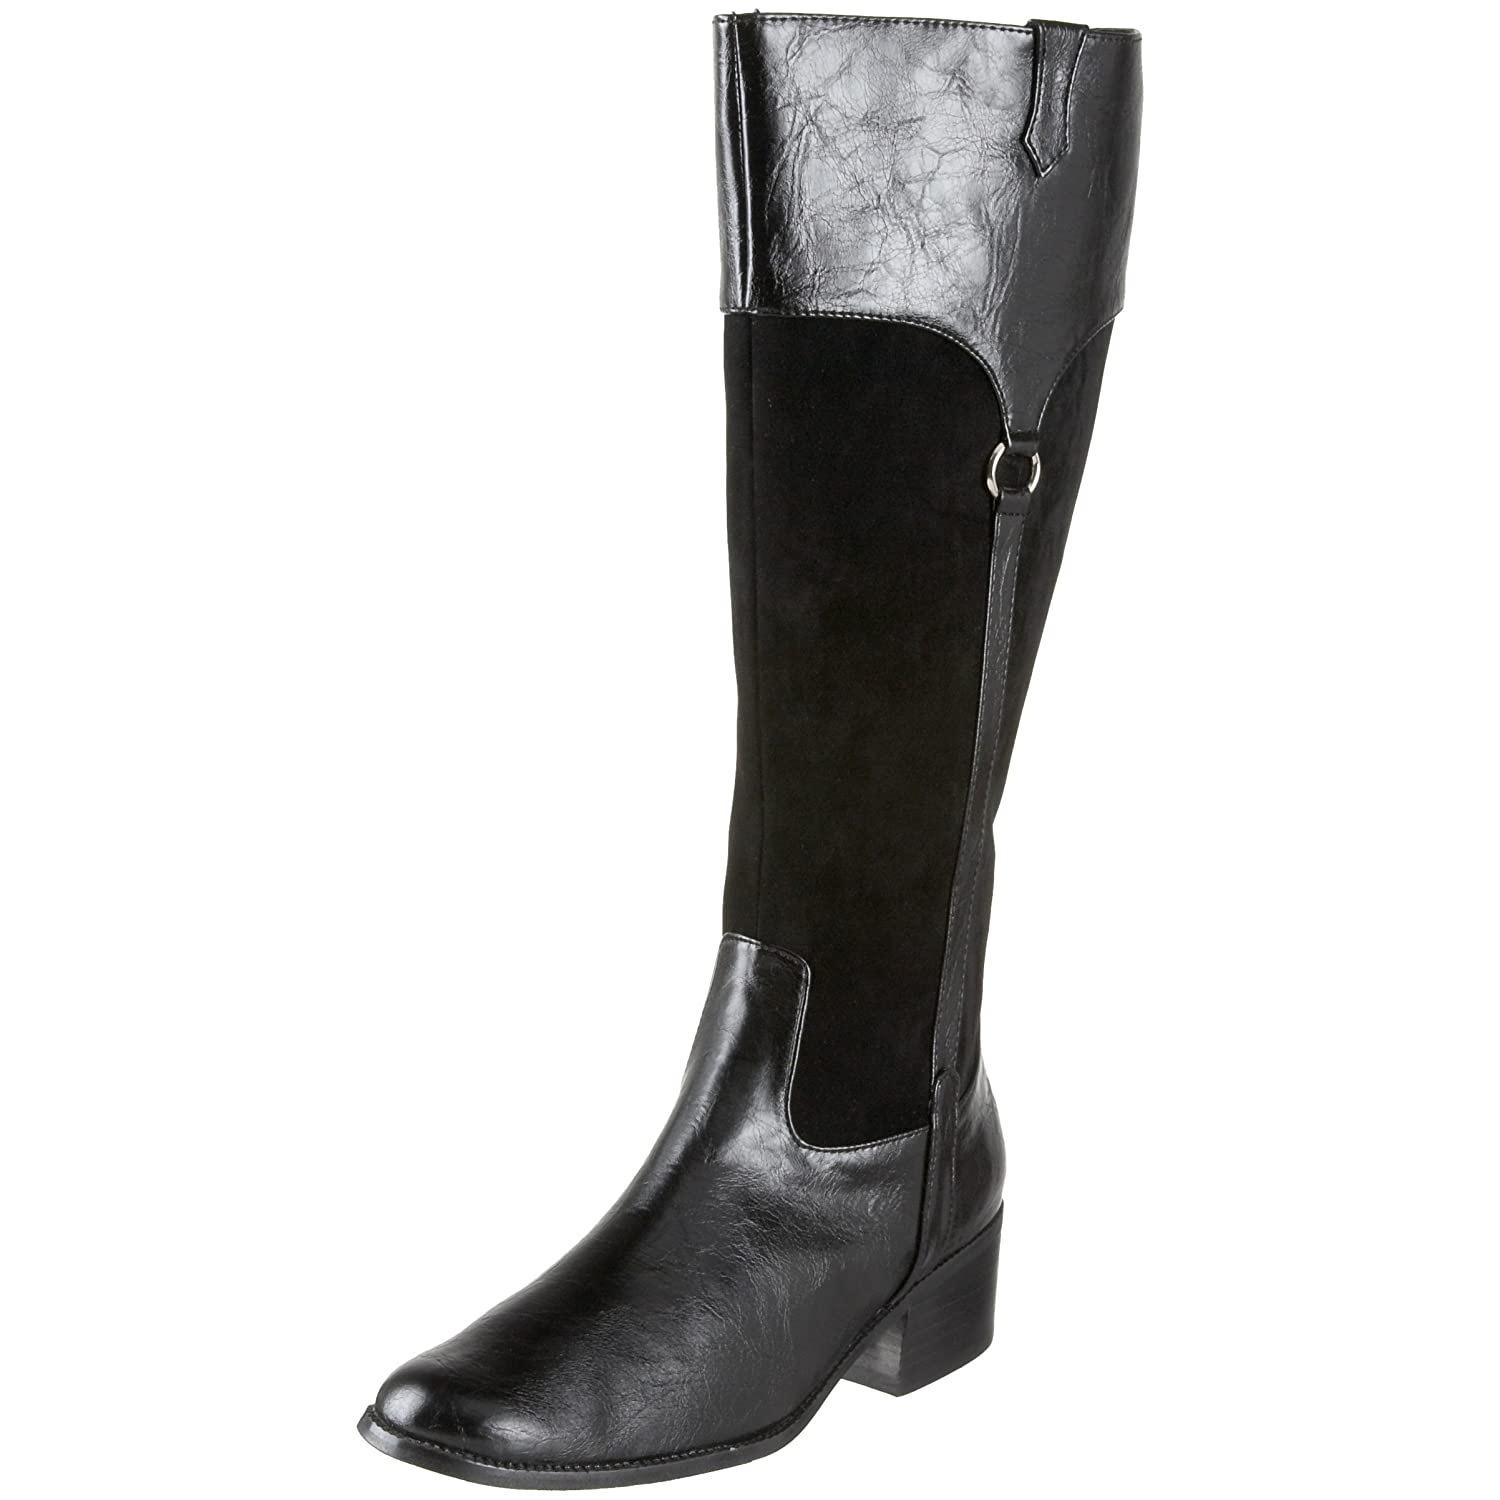 Annie Shoes - Rocco Knee-High Boot from endless.com